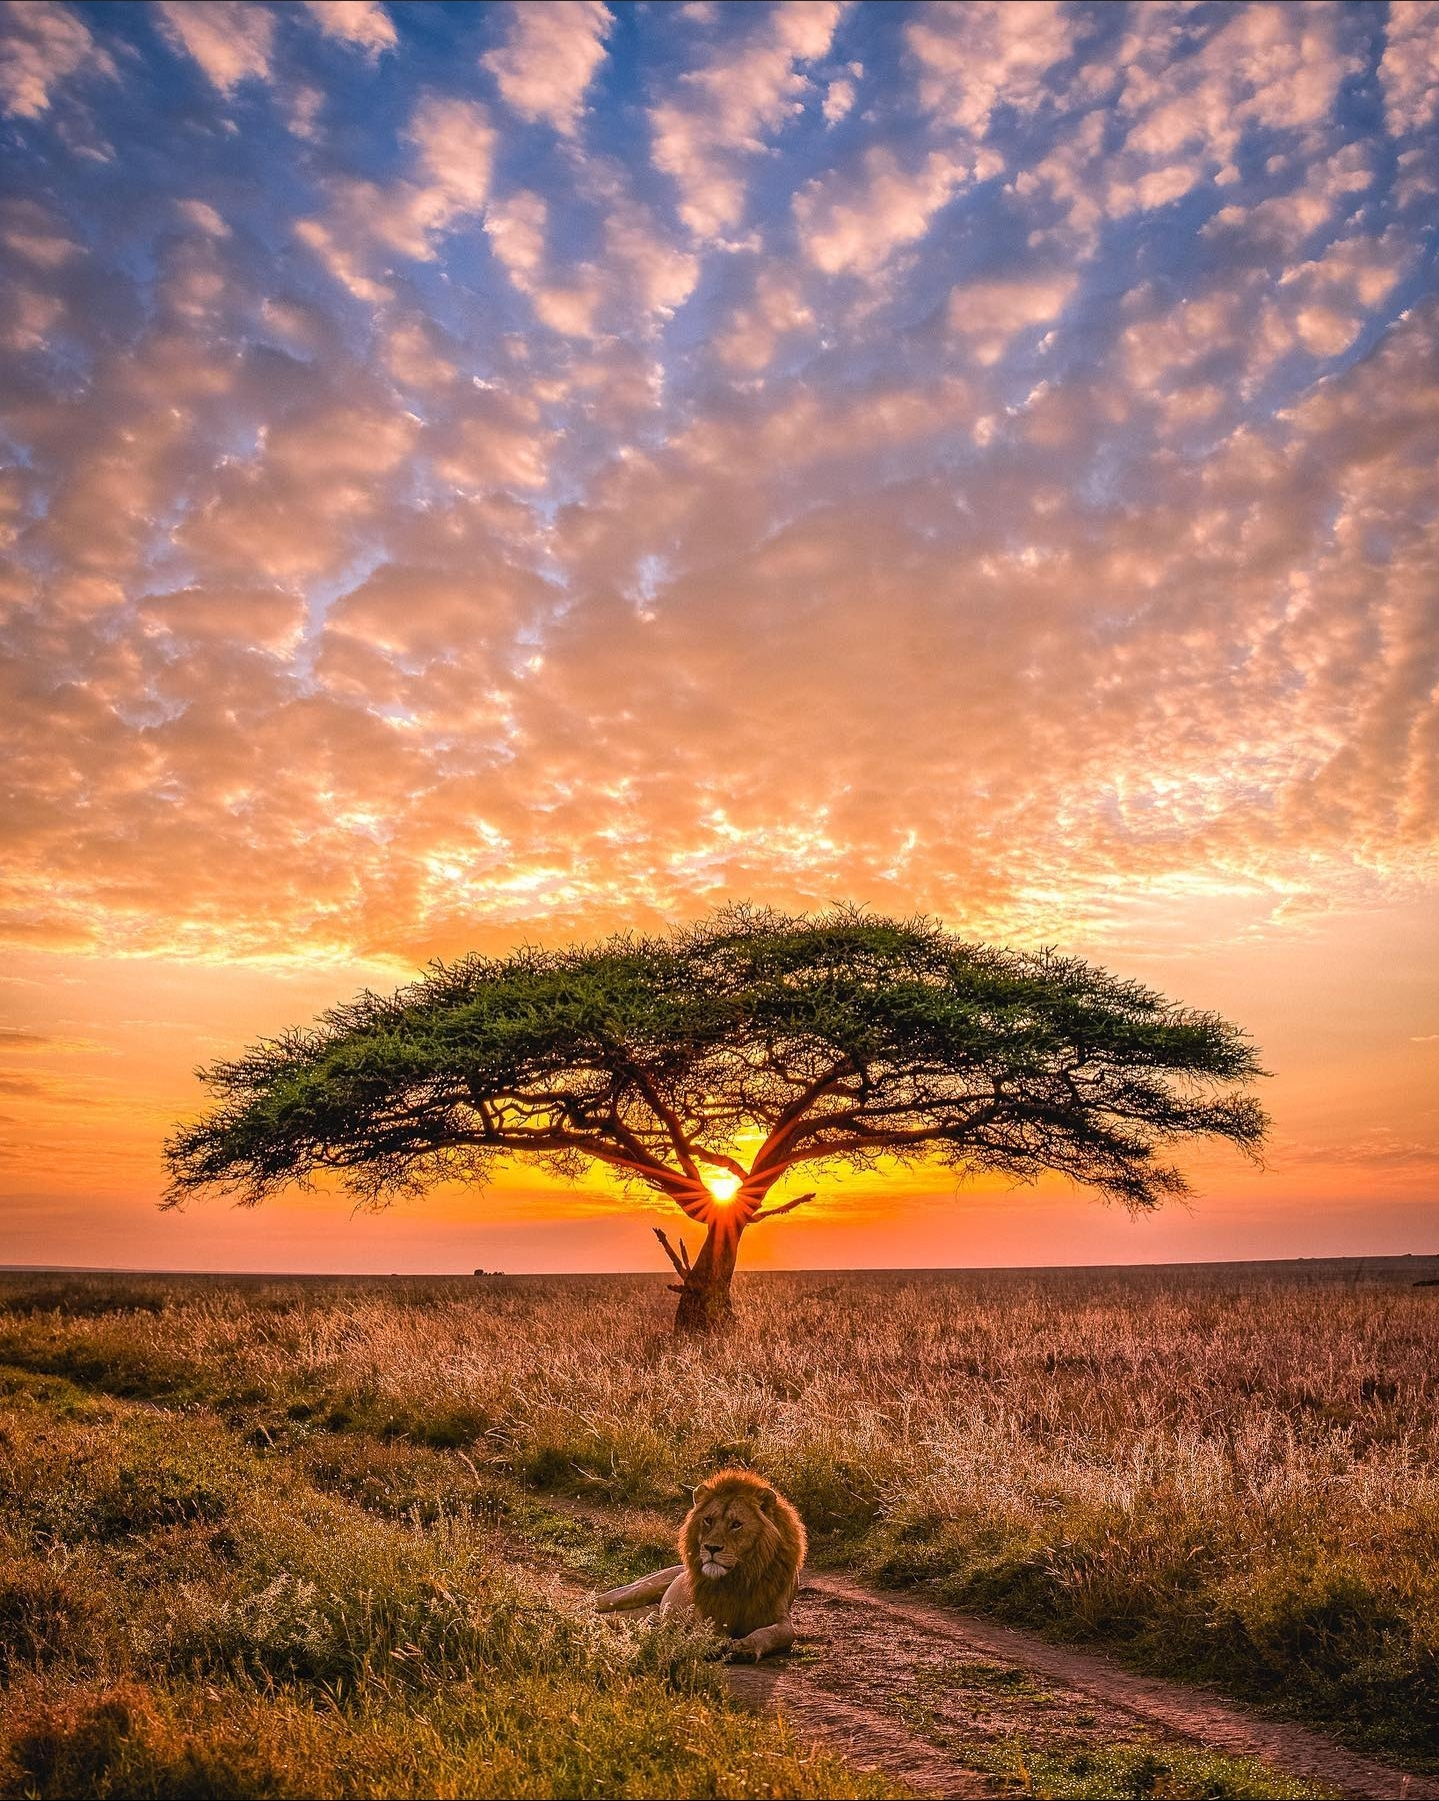 The real Lion King in Serengeti National Park, Tanzania